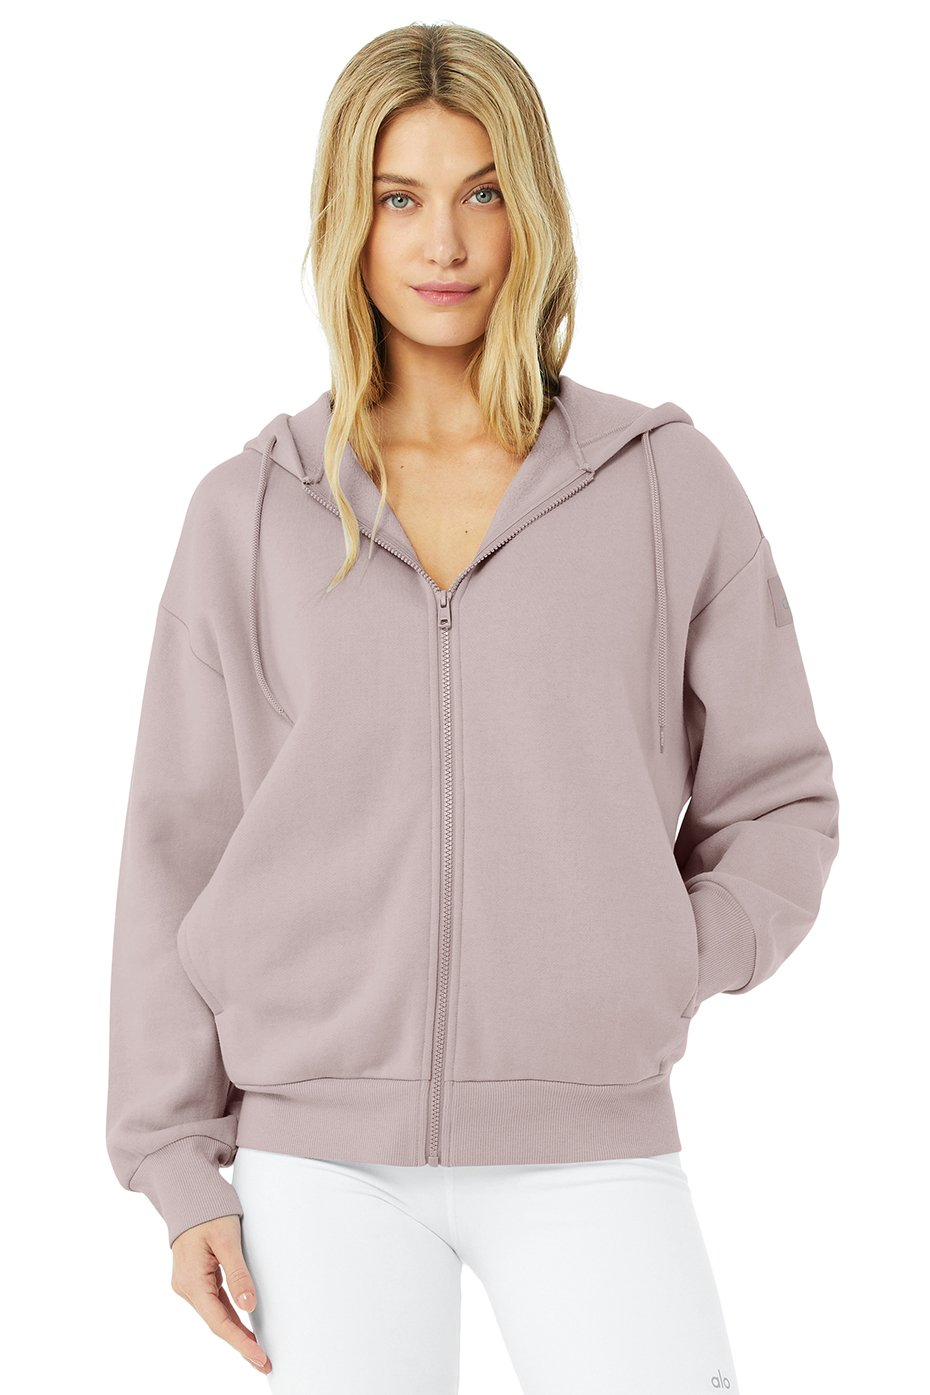 HYPE FULL ZIP HOODIE by Alo Yoga, available on aloyoga.com for $98 Kendall Jenner Outerwear Exact Product